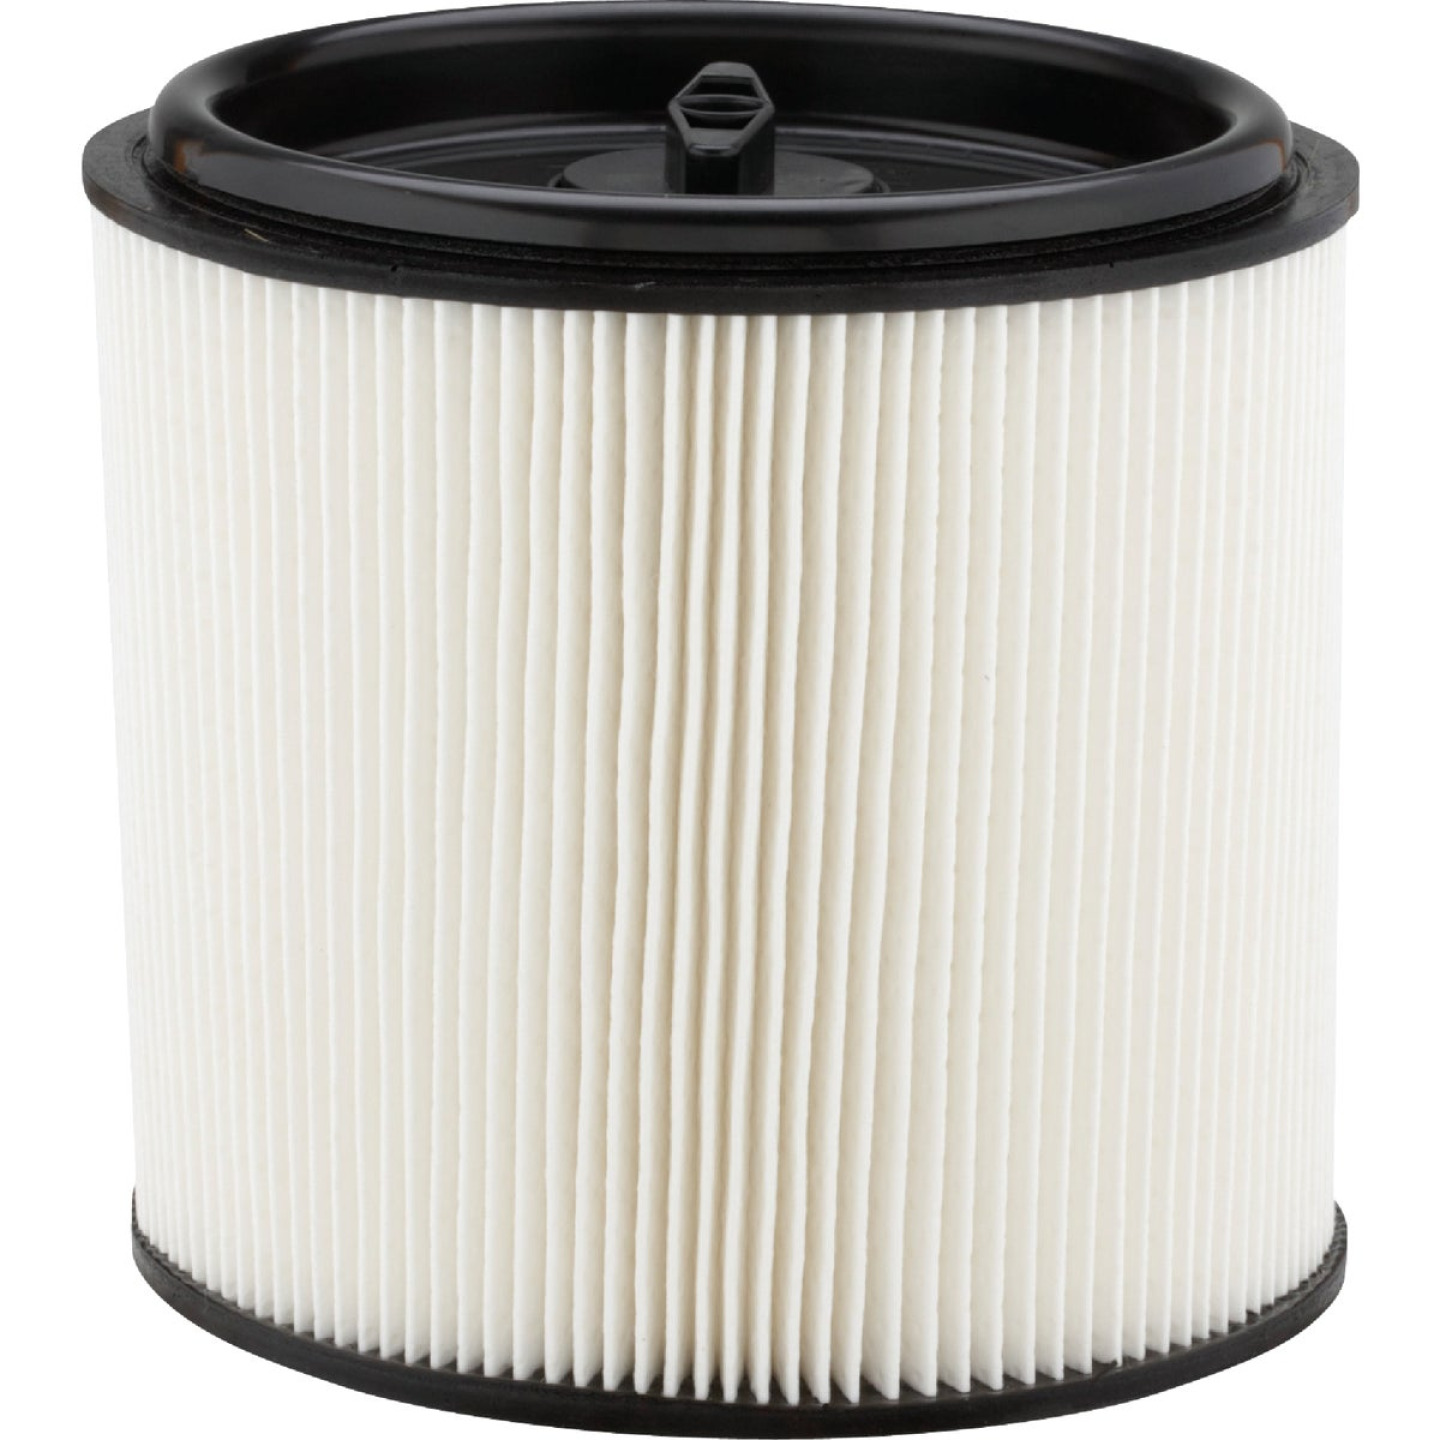 Channellock Cartridge HEPA 5 to 20 Gal. Vacuum Filter Image 1